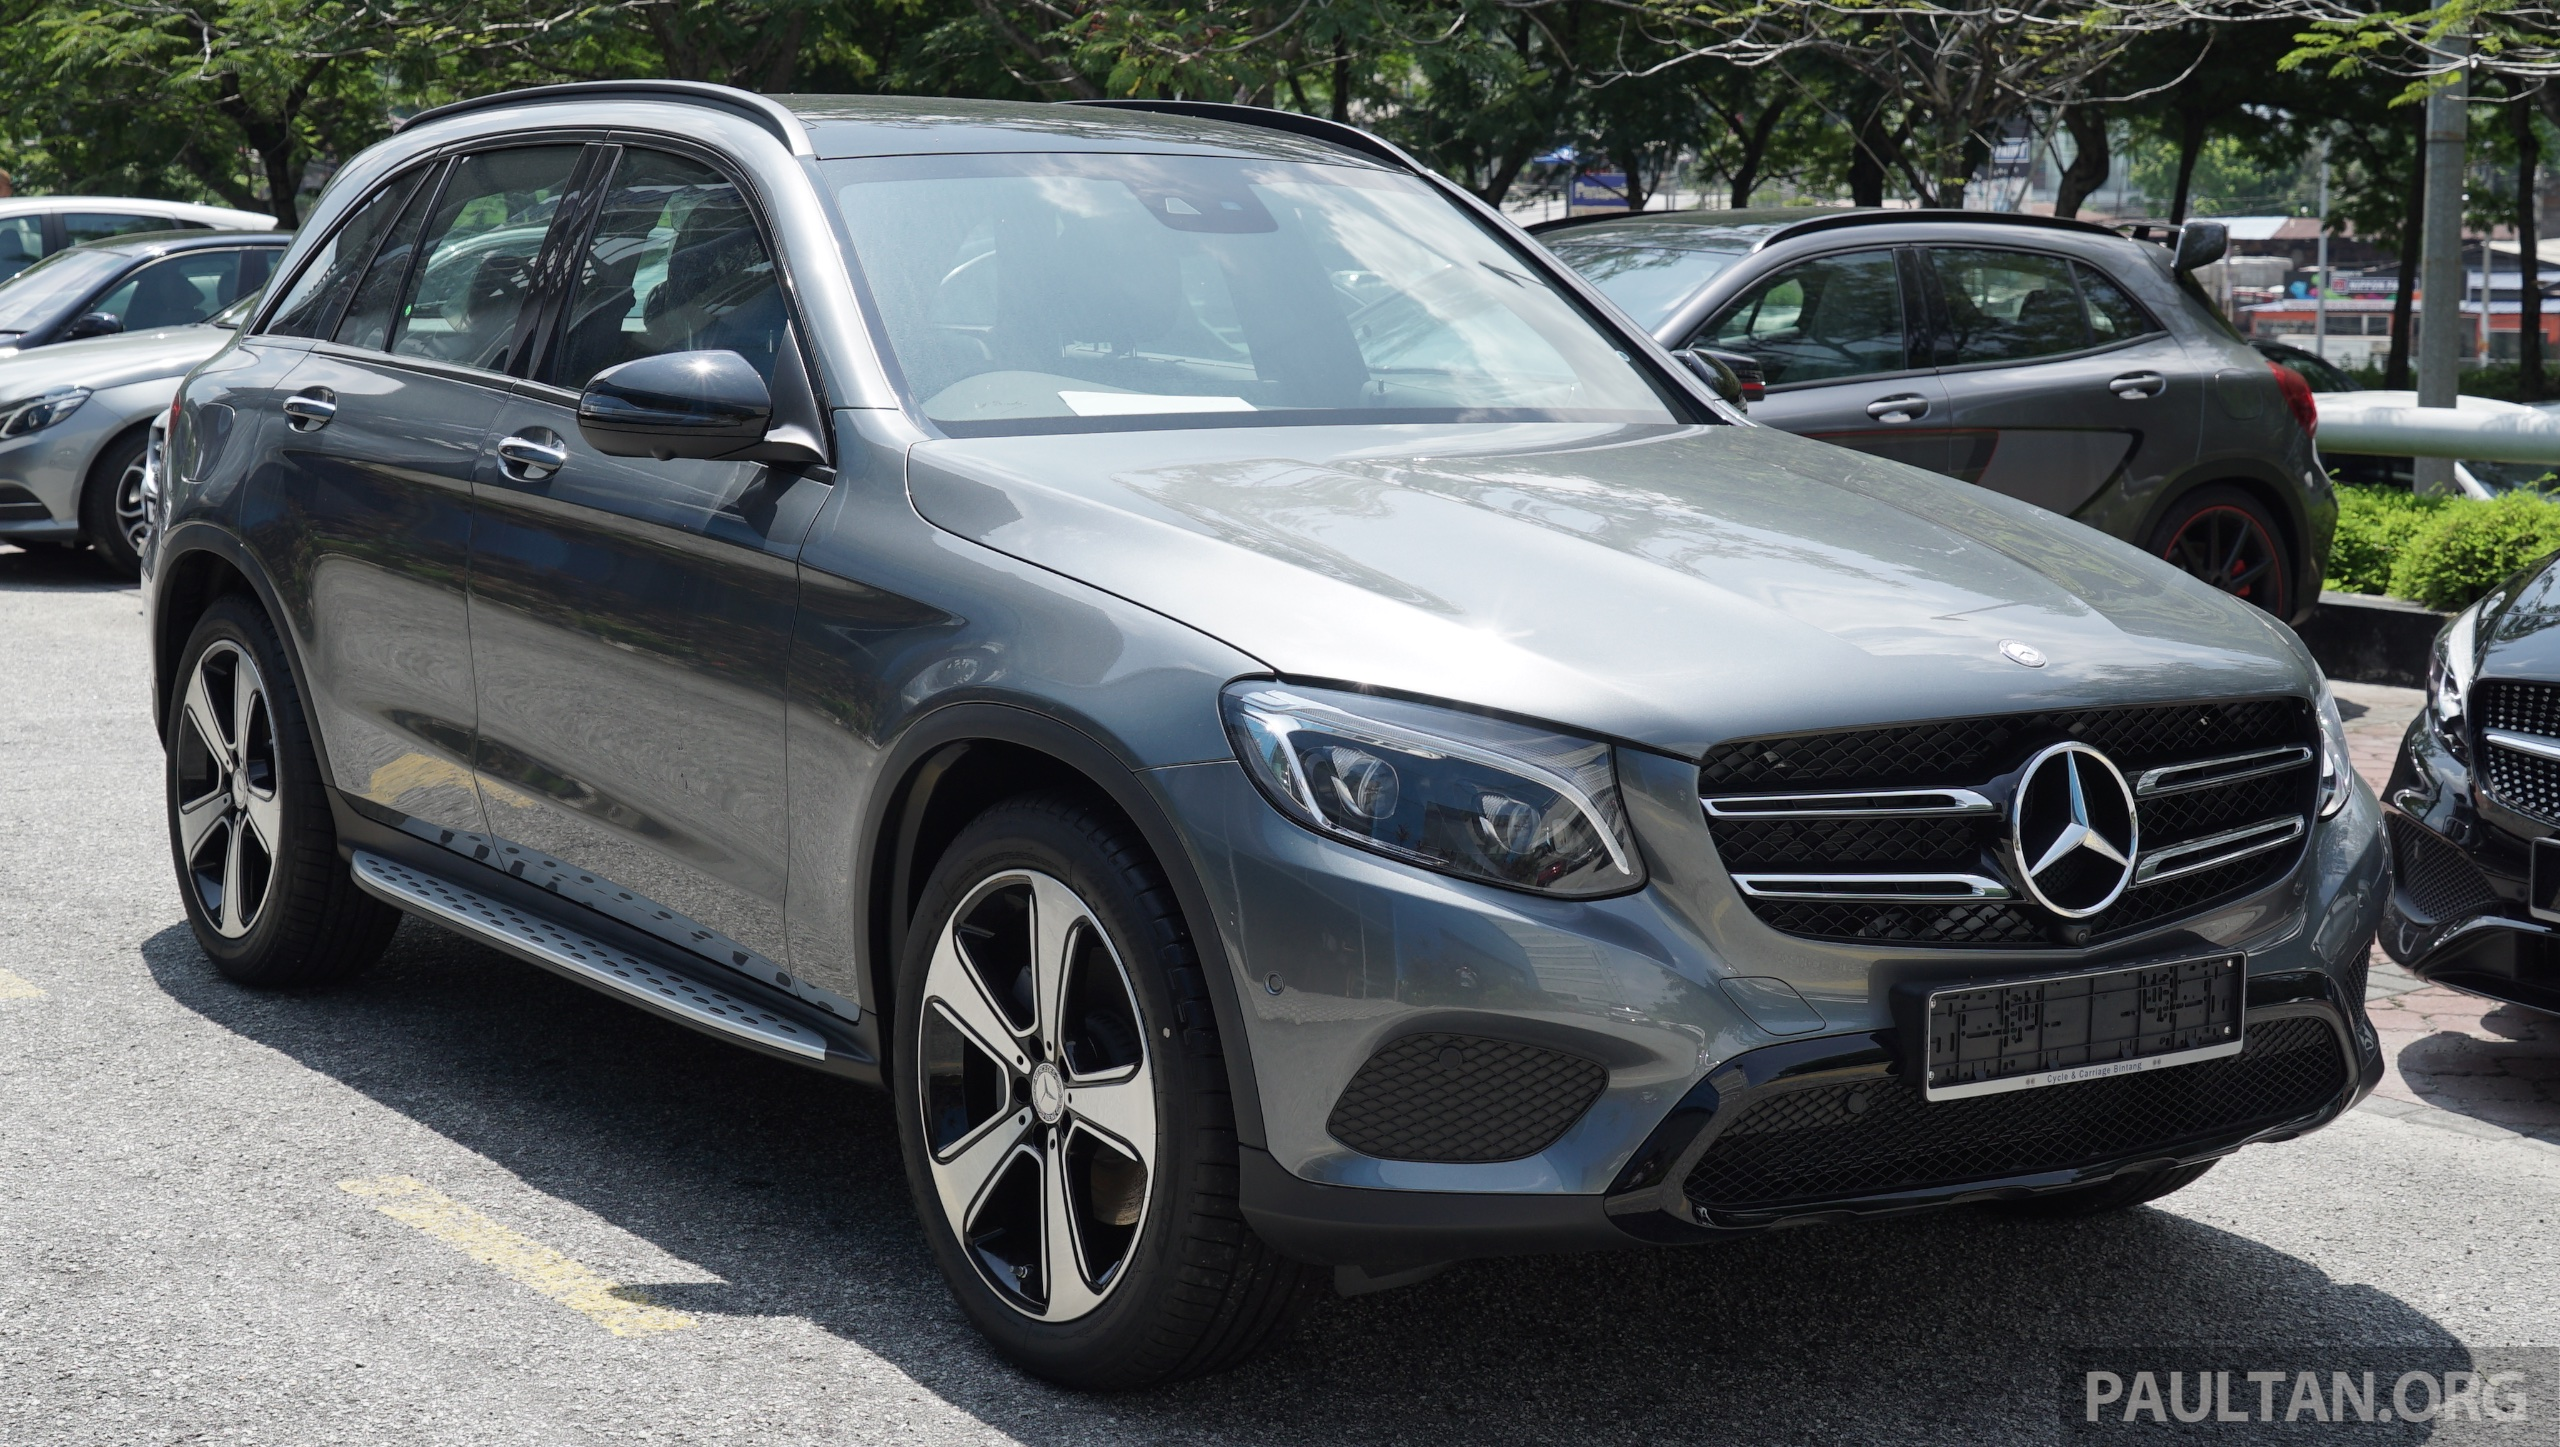 mercedes benz glc250 exclusive in malaysia rm326k. Black Bedroom Furniture Sets. Home Design Ideas